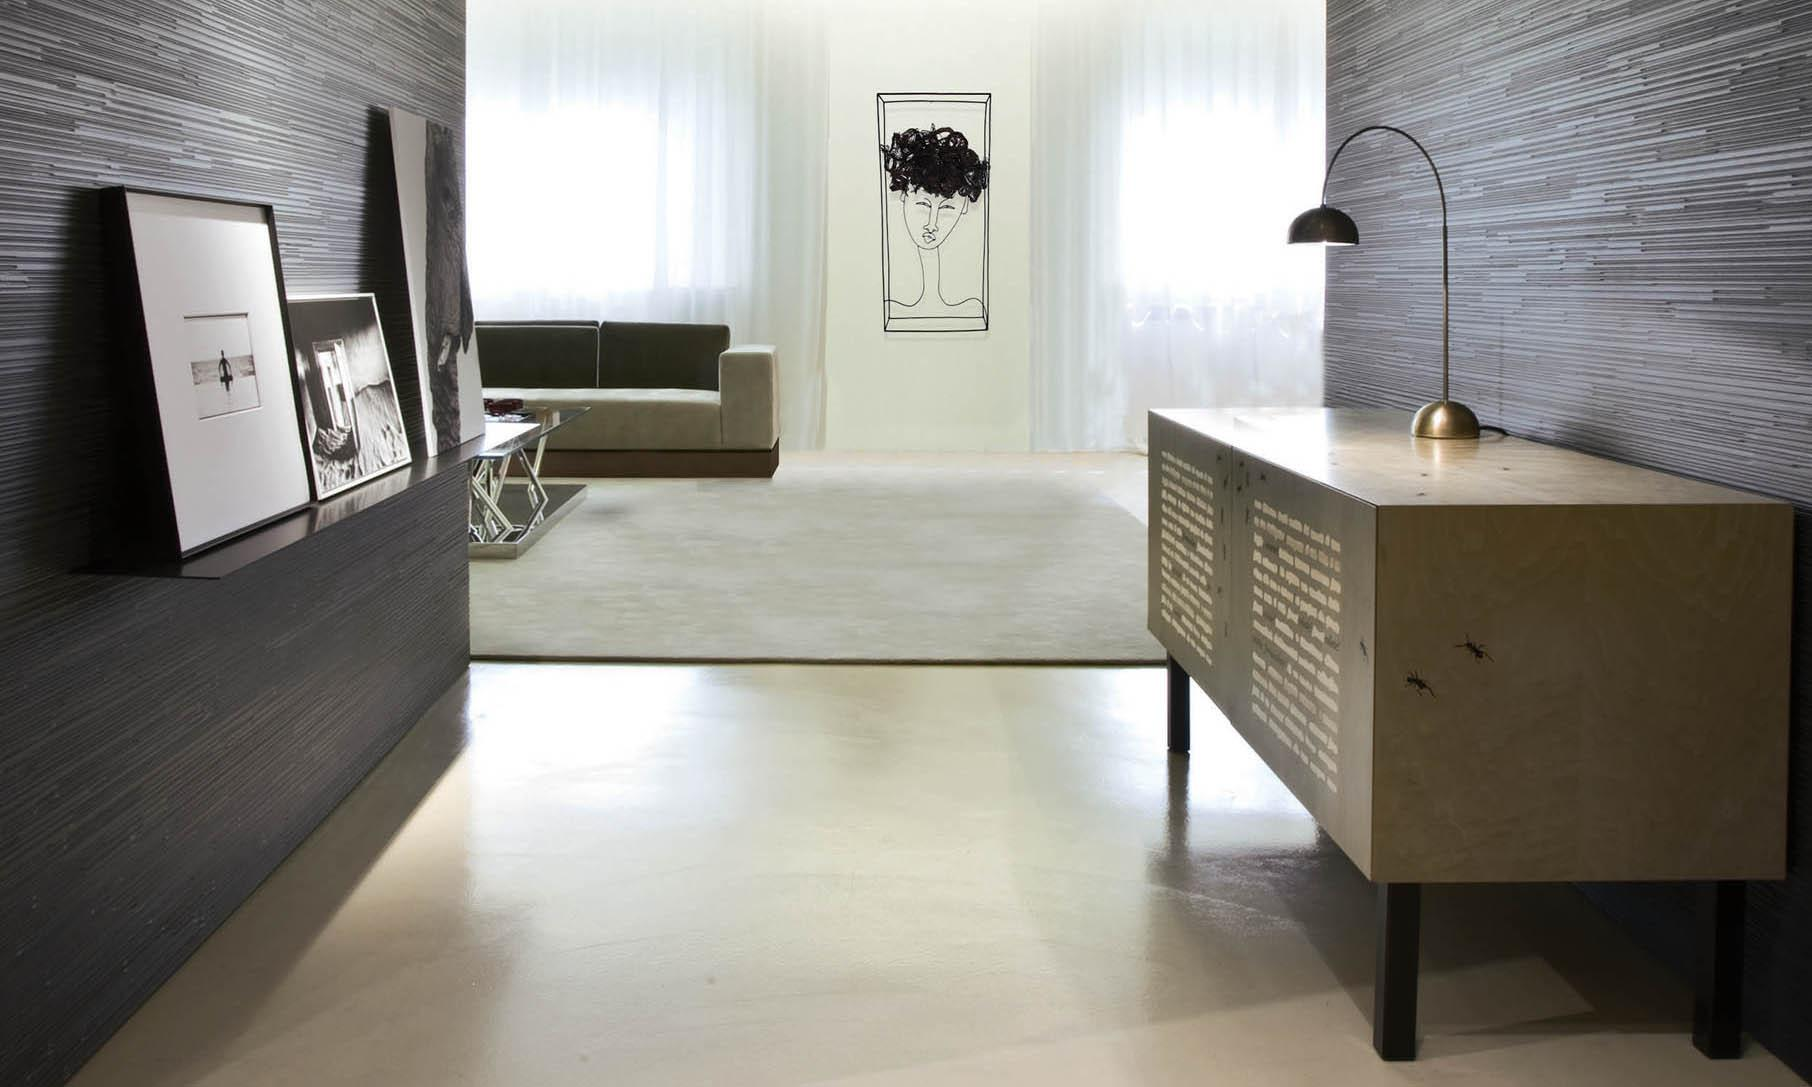 Laurameroni limited edition sideboard in inlaid wood by Emilio Isgrò for an artistic and exclusive interior design